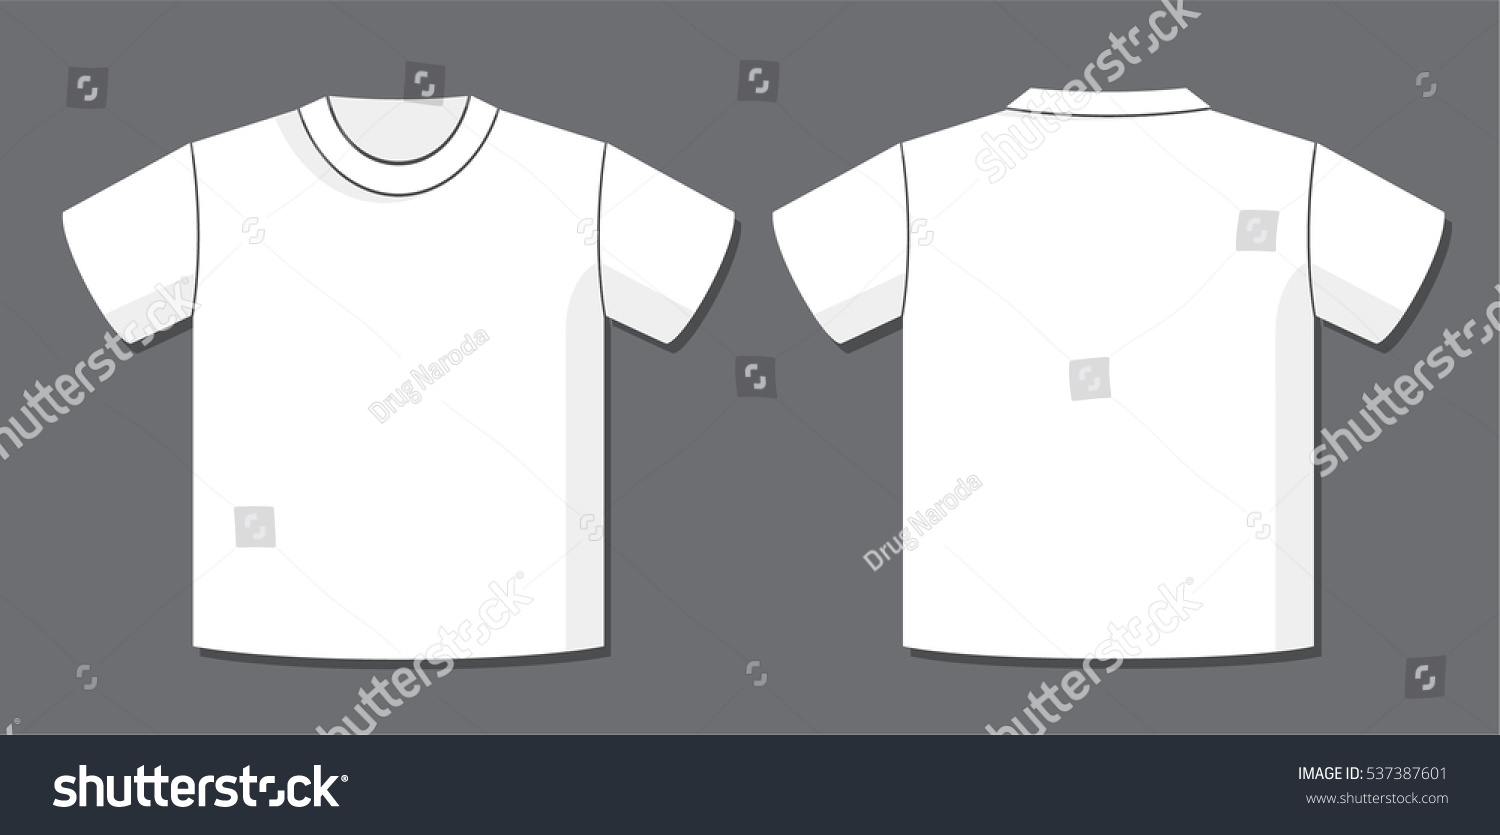 White t shirt front and back template - T Shirt Vector Template With Front And Back View Of The Unisex Blank Garment Design